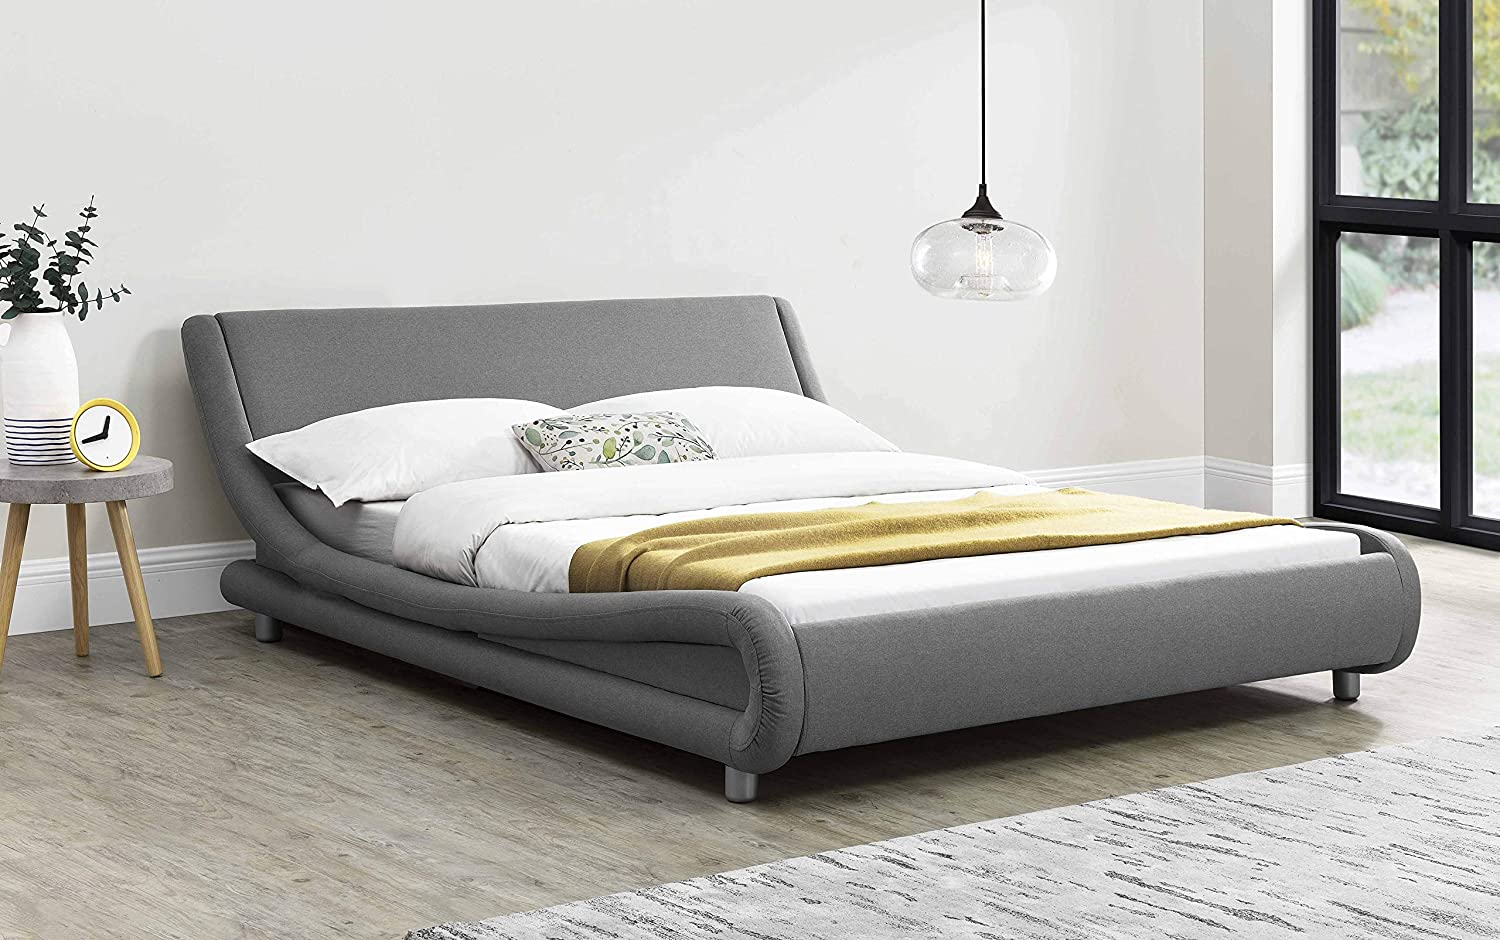 Important things that you need to check when choosing a bed size